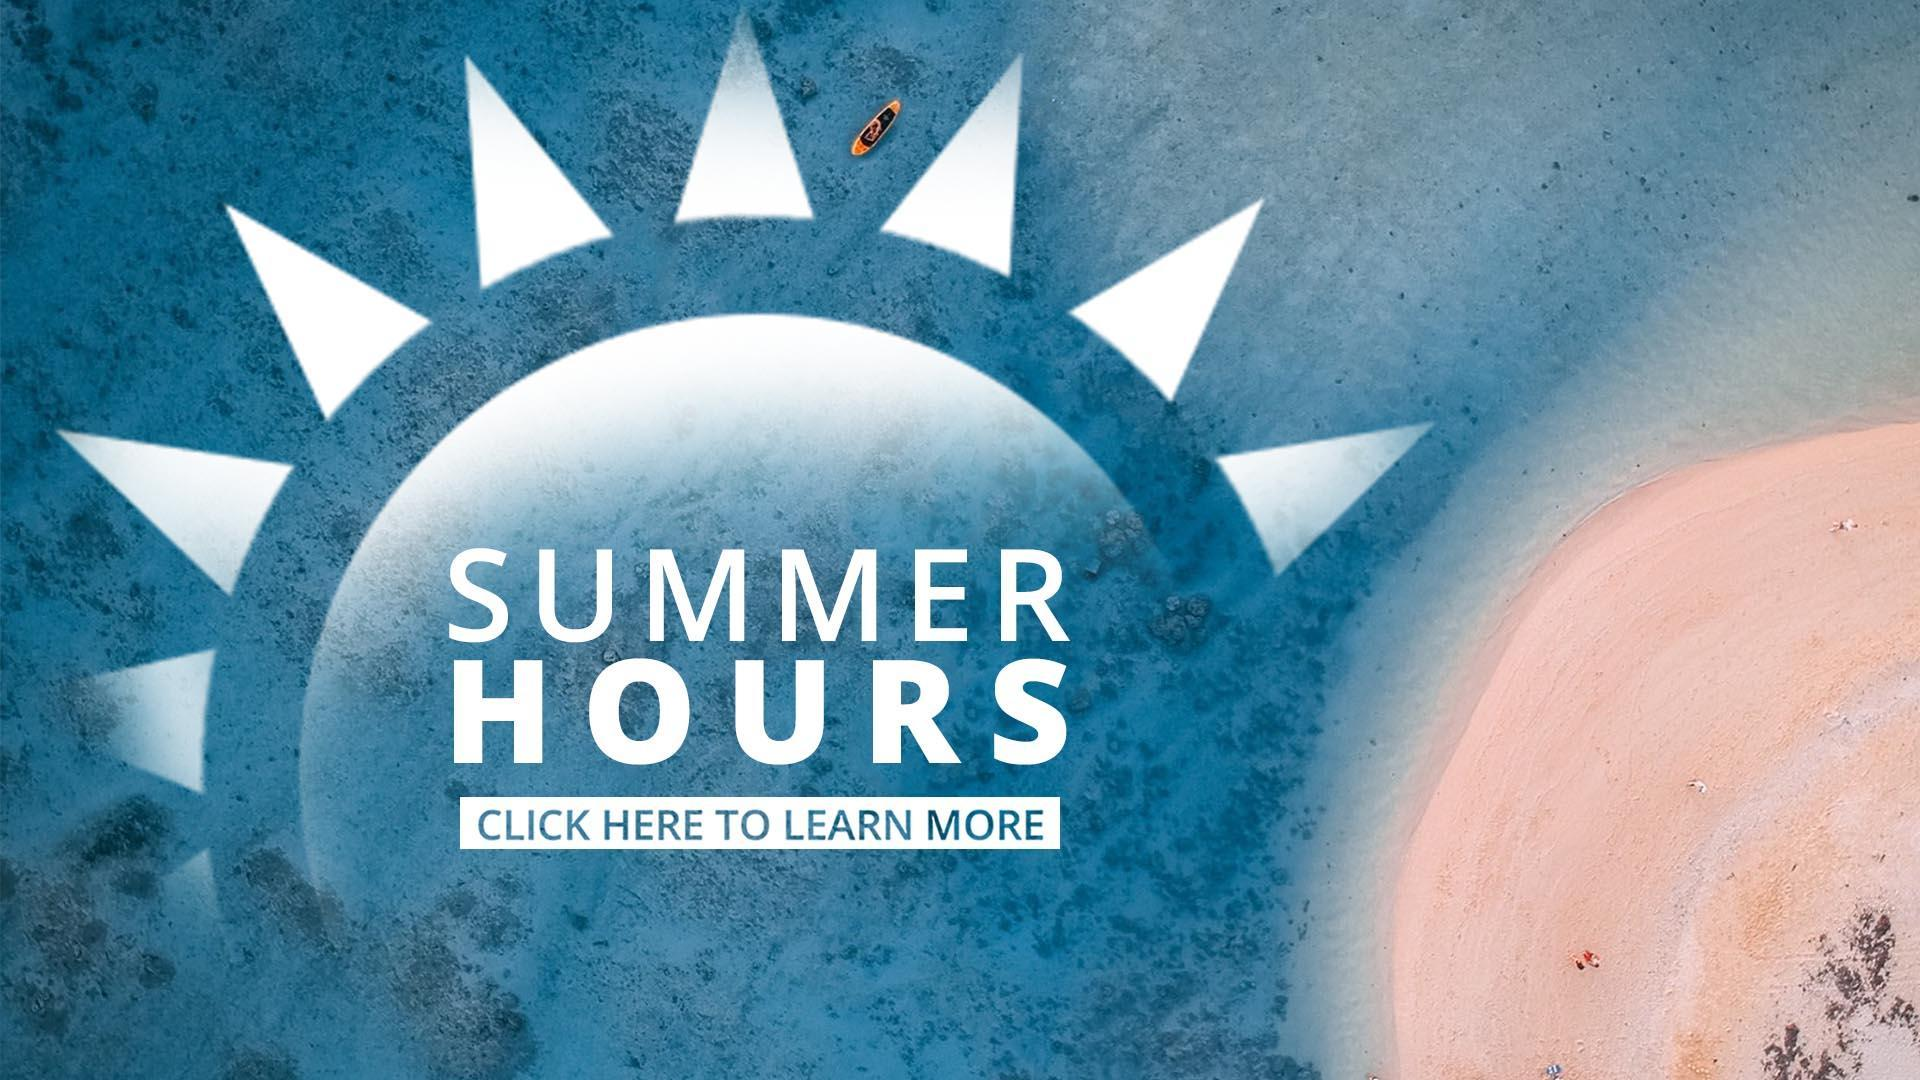 Summer Hours Graphic.  Photo is from an airplane looking down onto a beach.